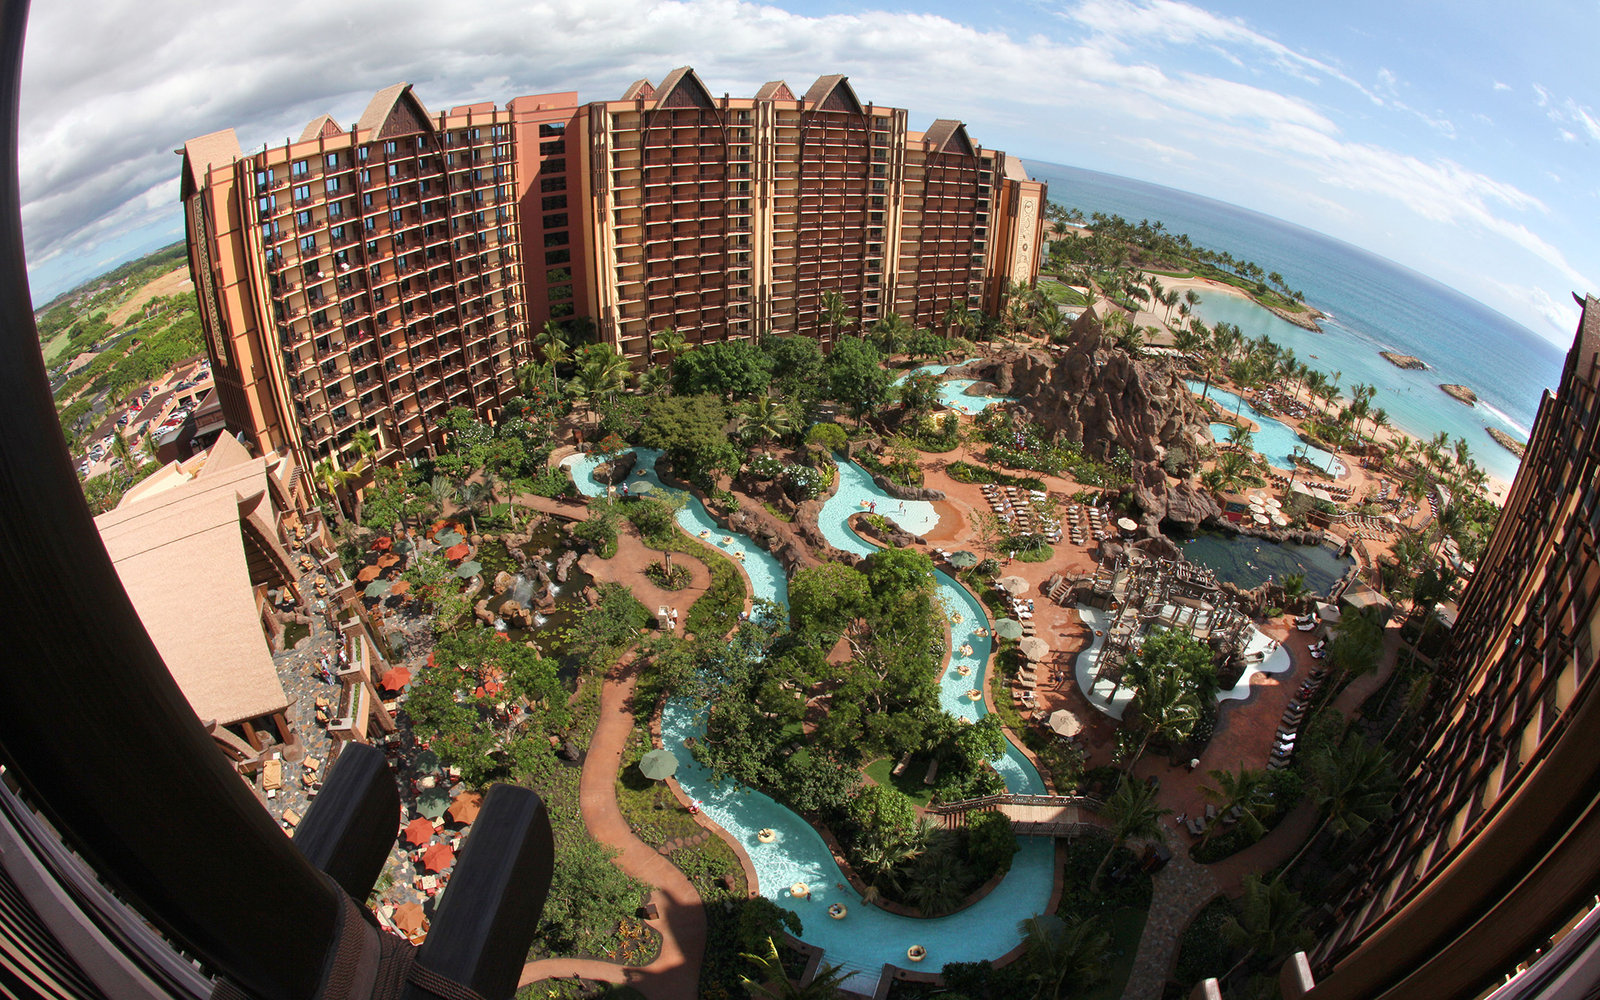 Aulani Overall Images